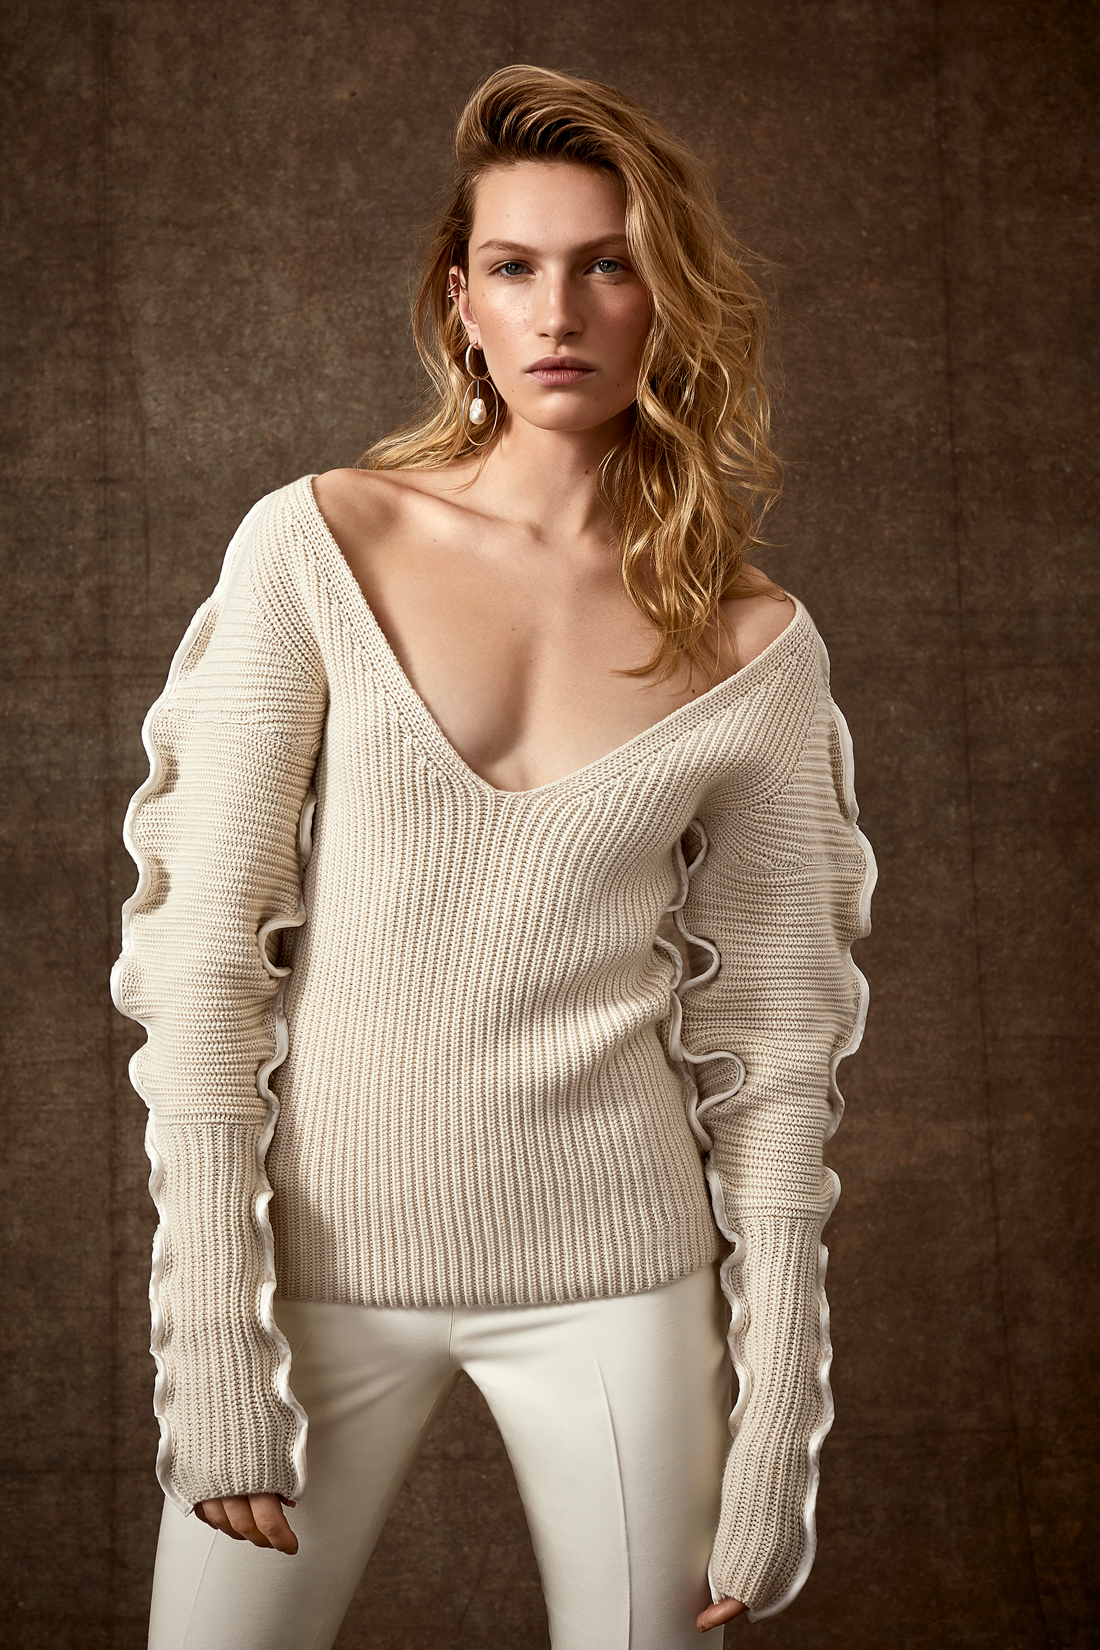 scalloped edging long sleeve knit scooped neck sweater with pants wedding set Danielle Frankel Spring 2020